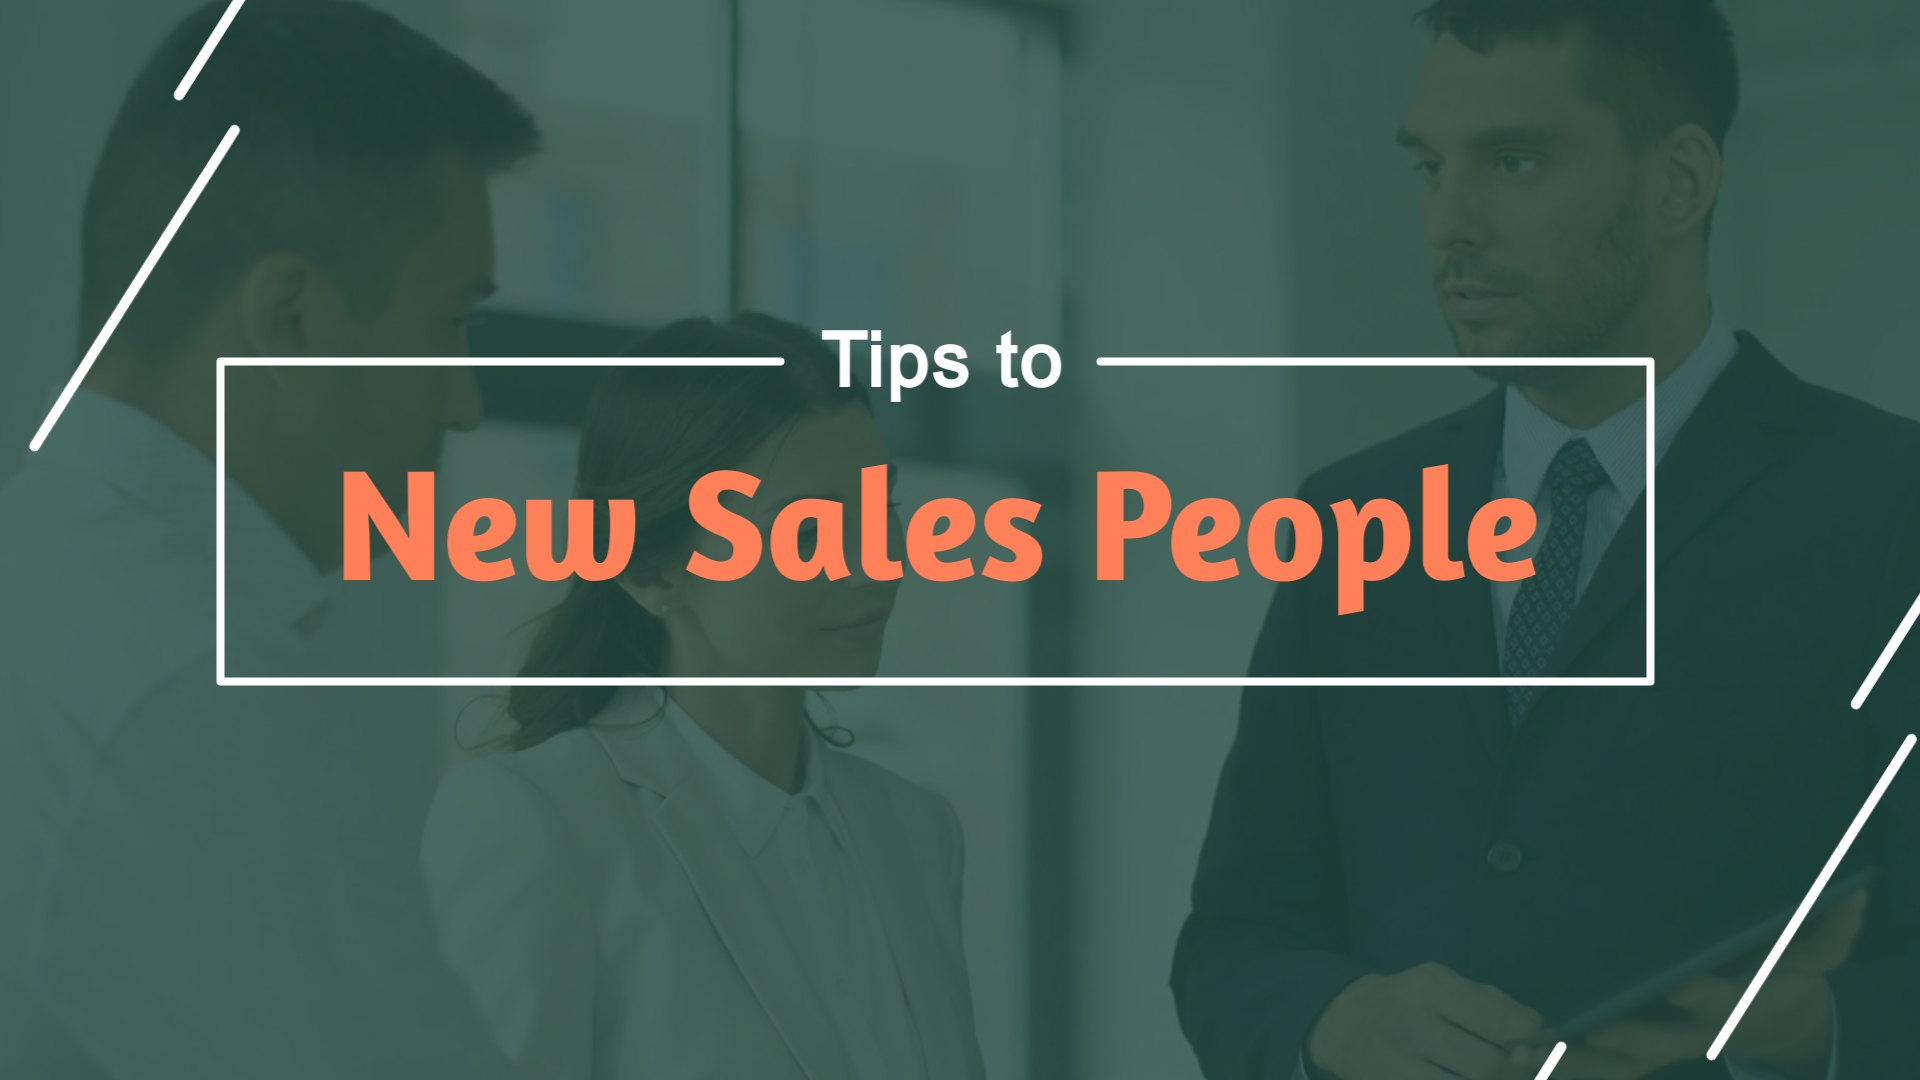 3 Tips for New Salespeople - Listicle Video Template